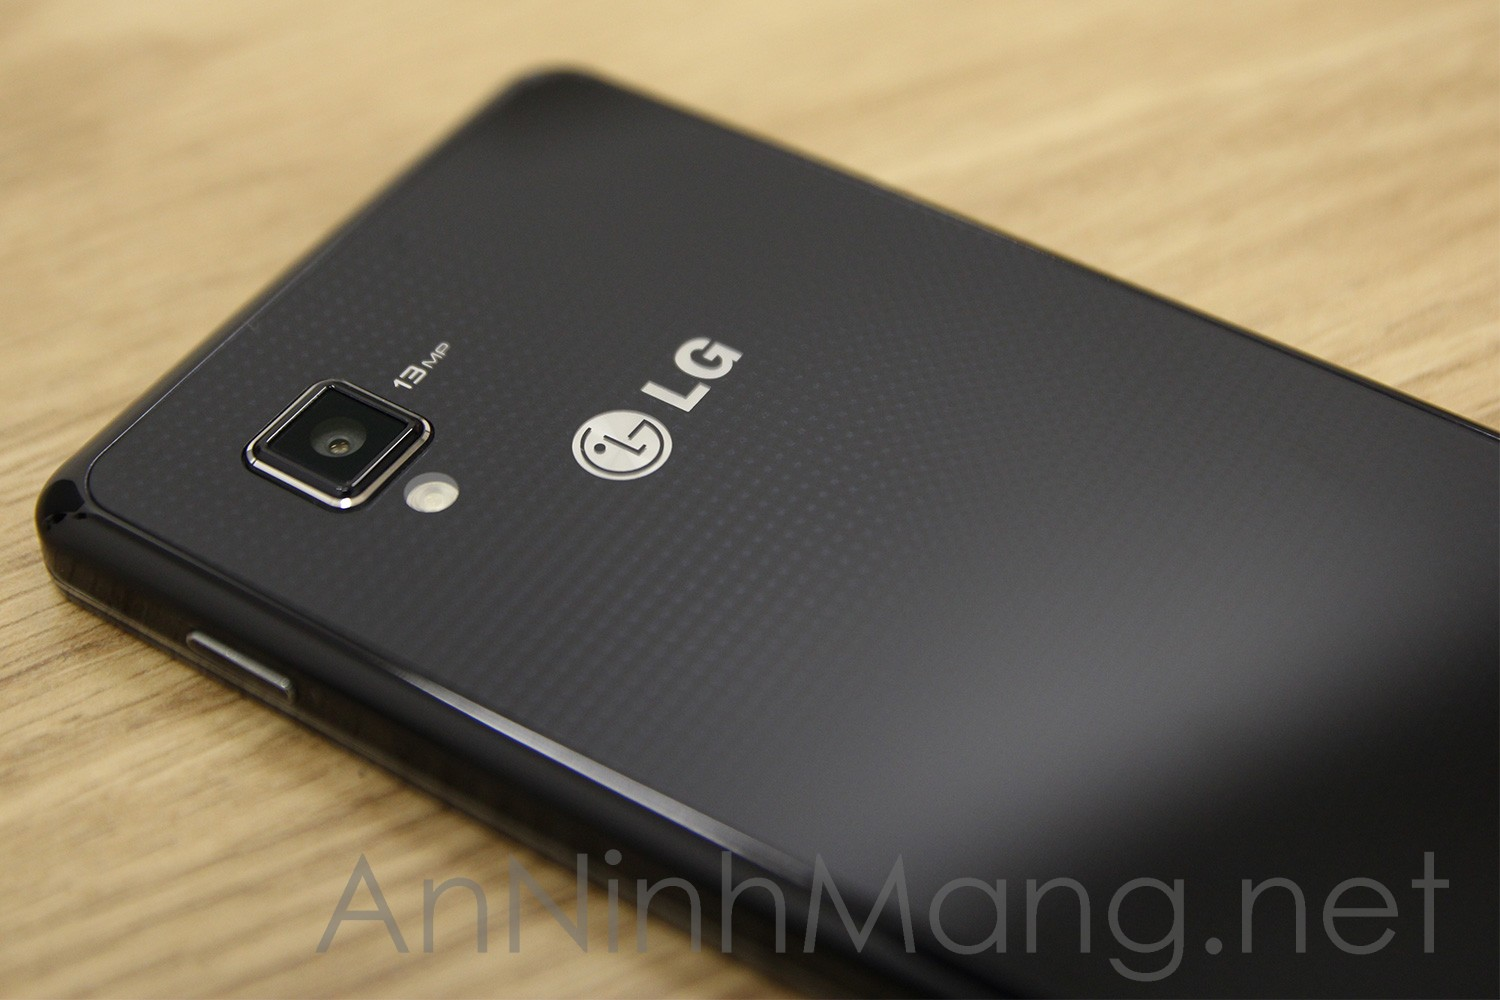 LG-Optimus-G-Rear-Facing-13-Megapixel-Camera